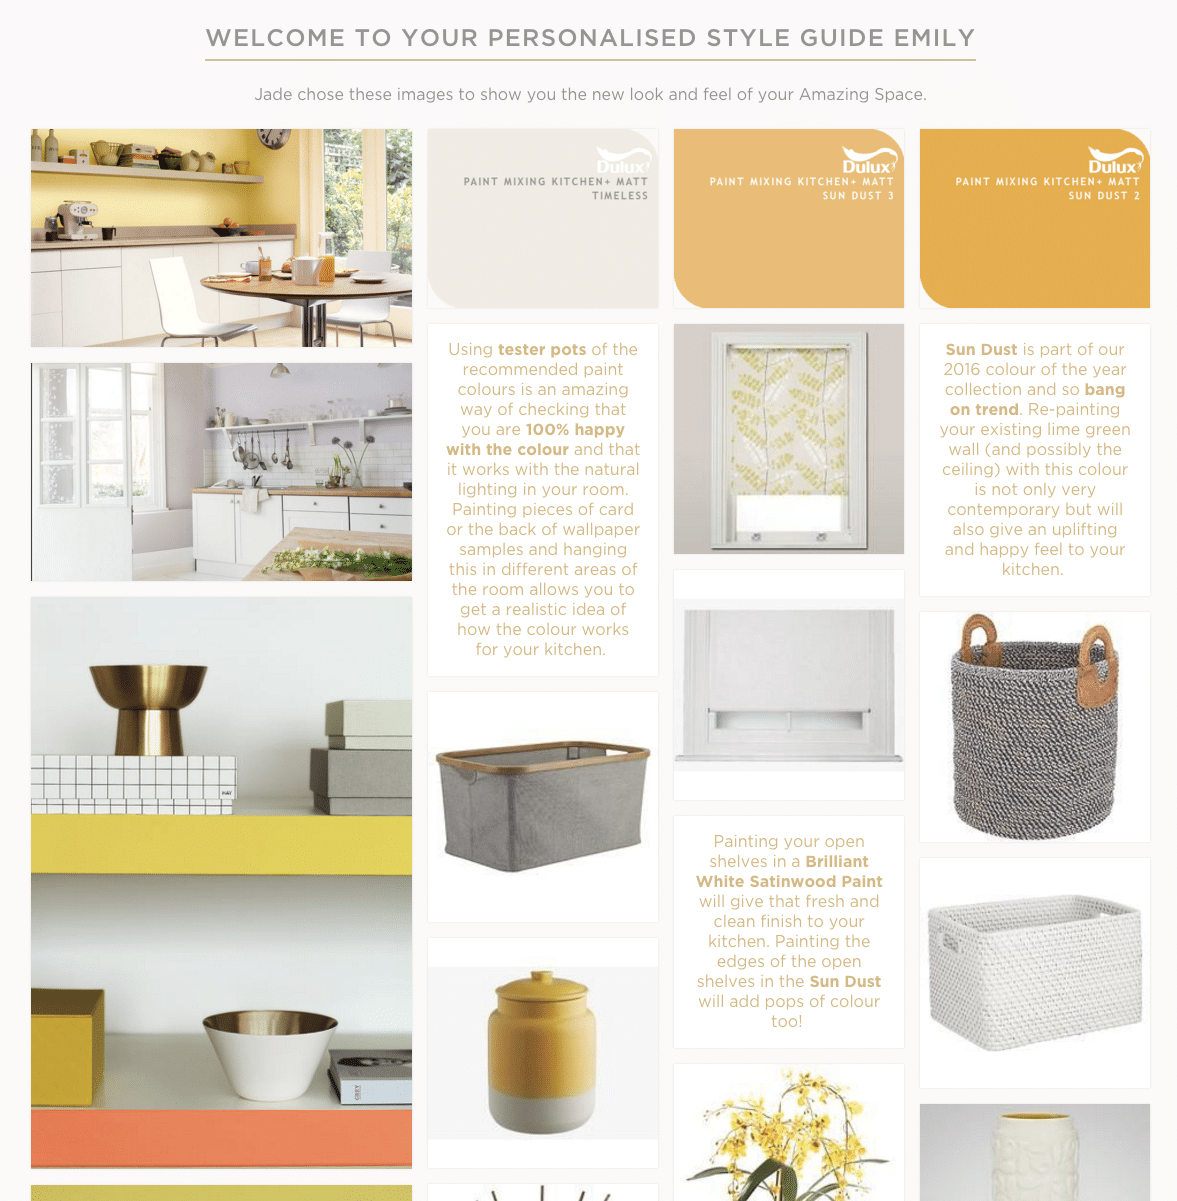 Kitchen - Personalised style guide